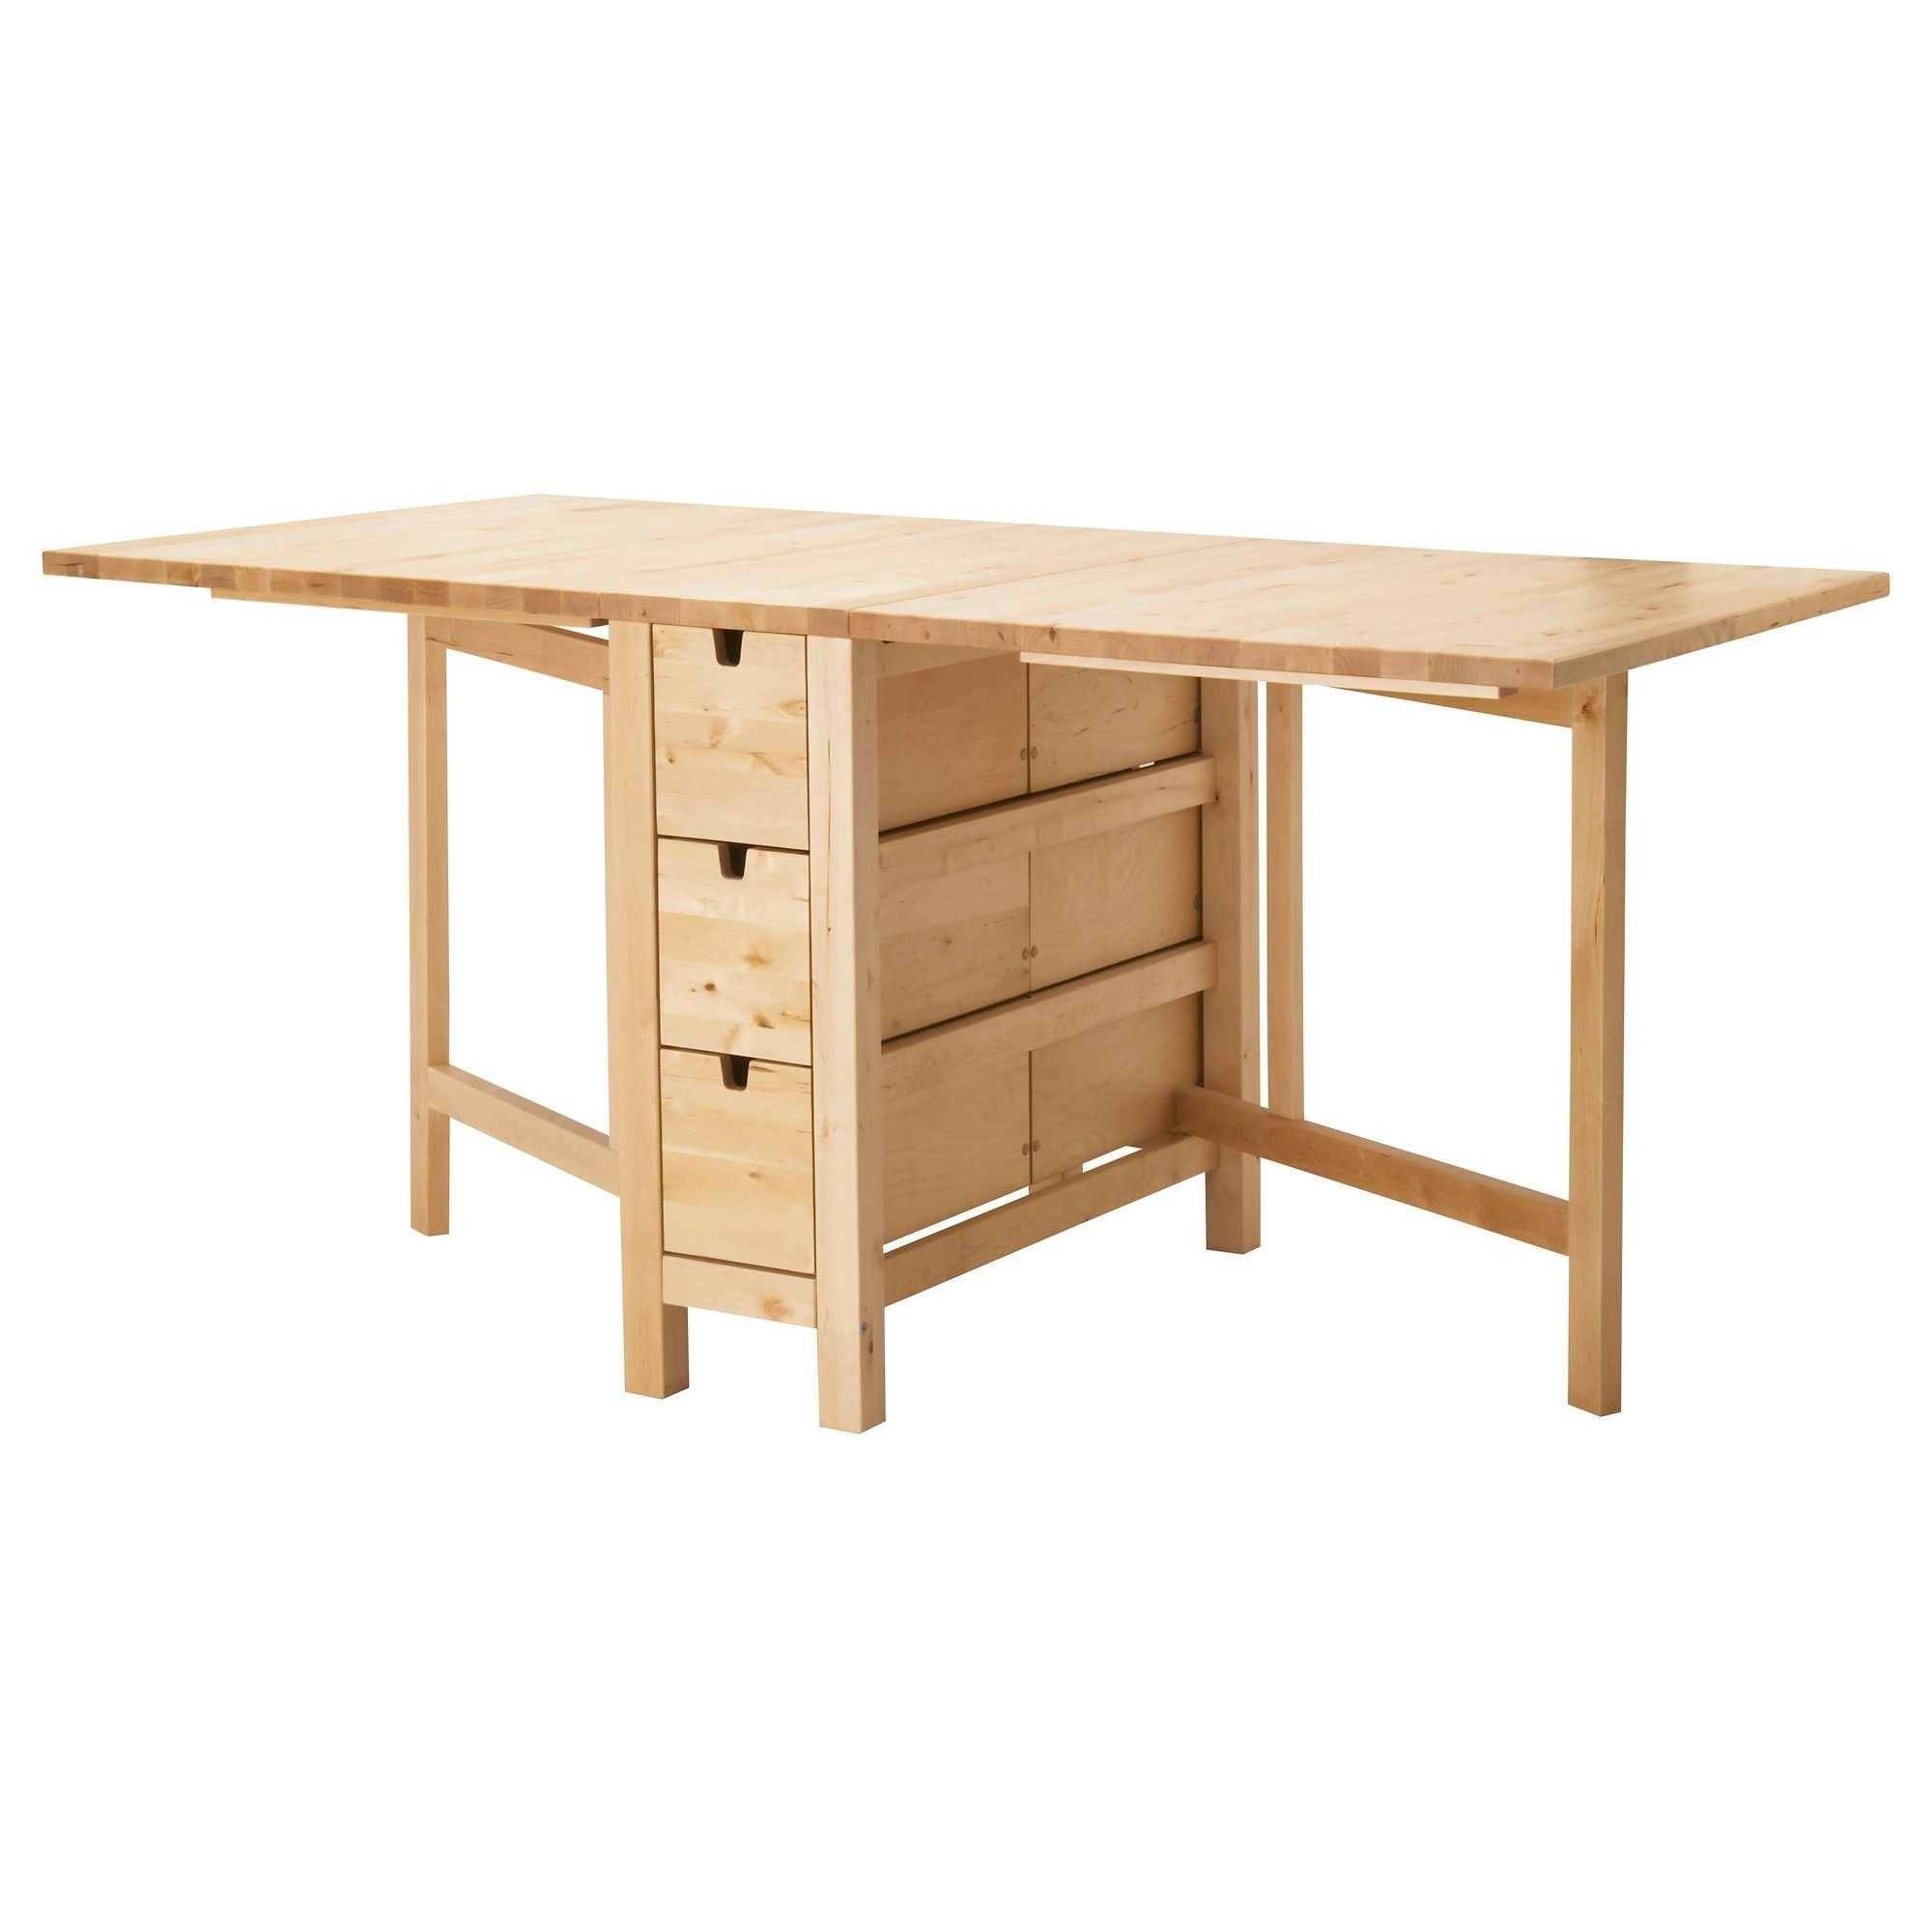 Ikea Folding Tables To Buy Or Not In Ideas On Foter